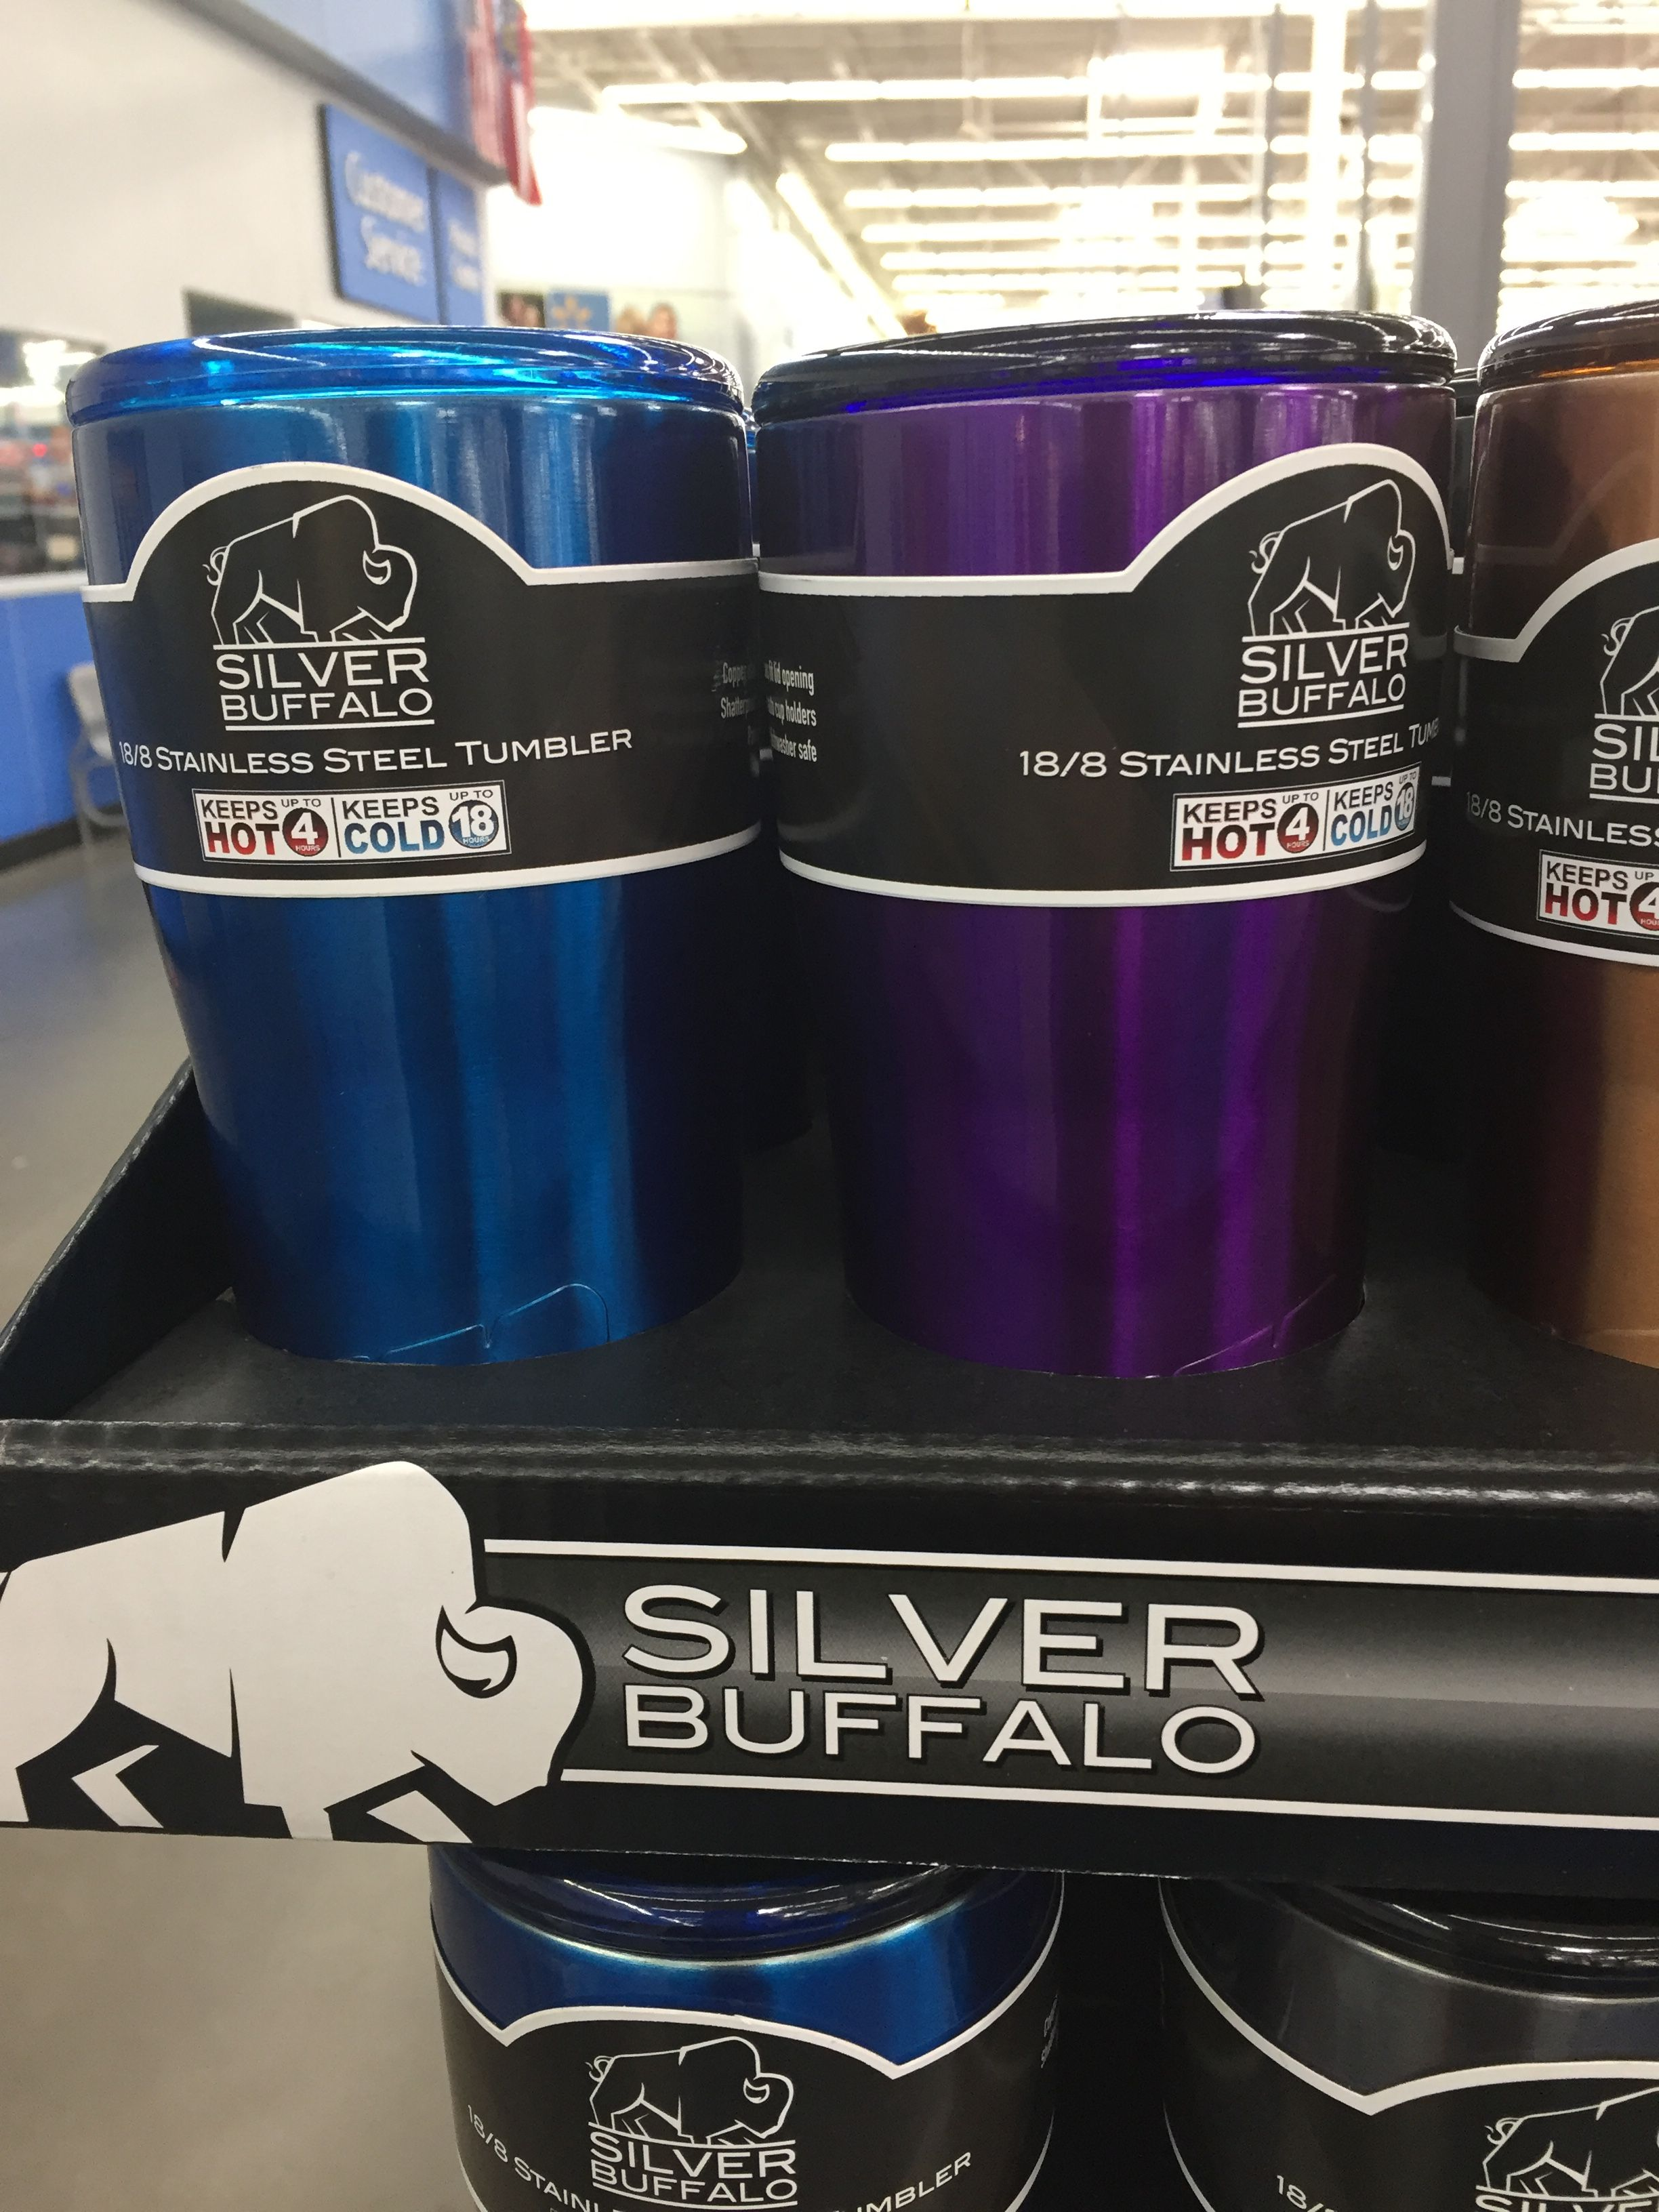 Silver Buffalo insulated cup at Walmart 10 similar to